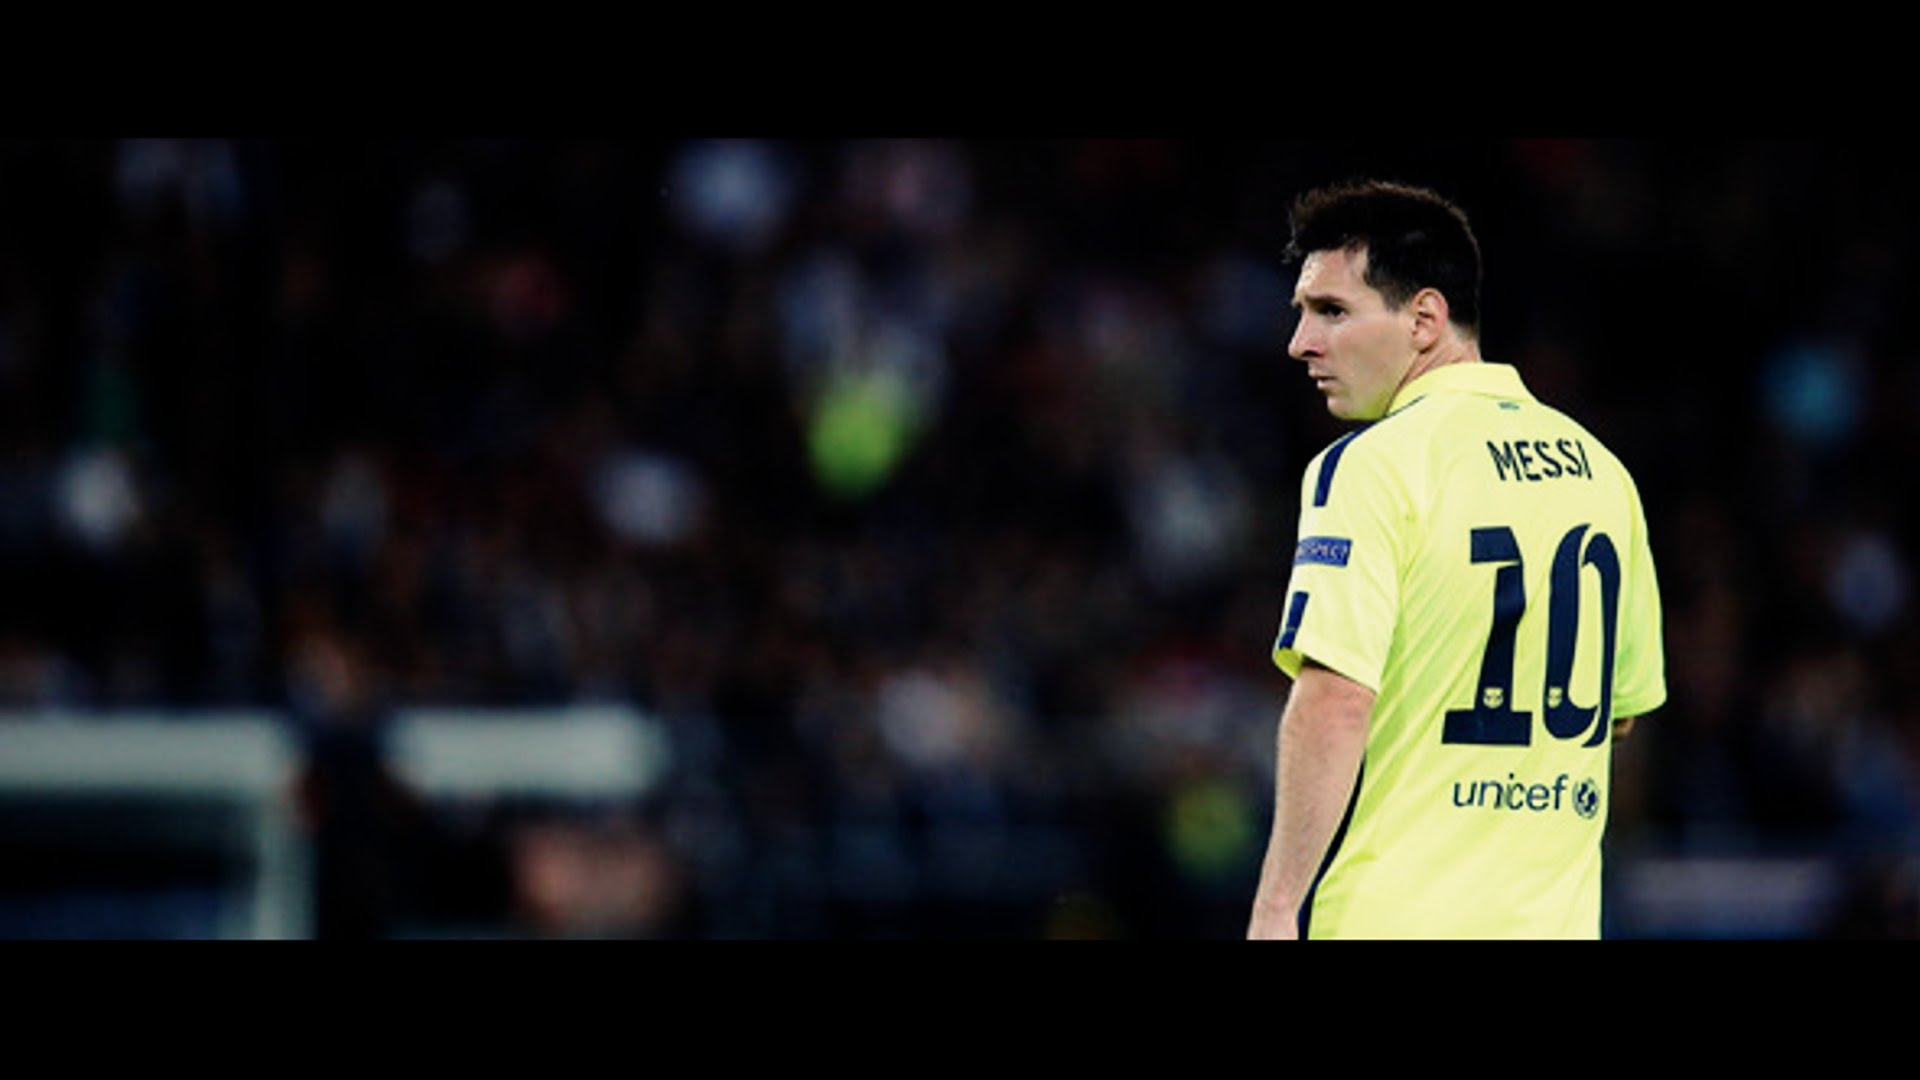 Lionel Messi Wallpapers High Quality